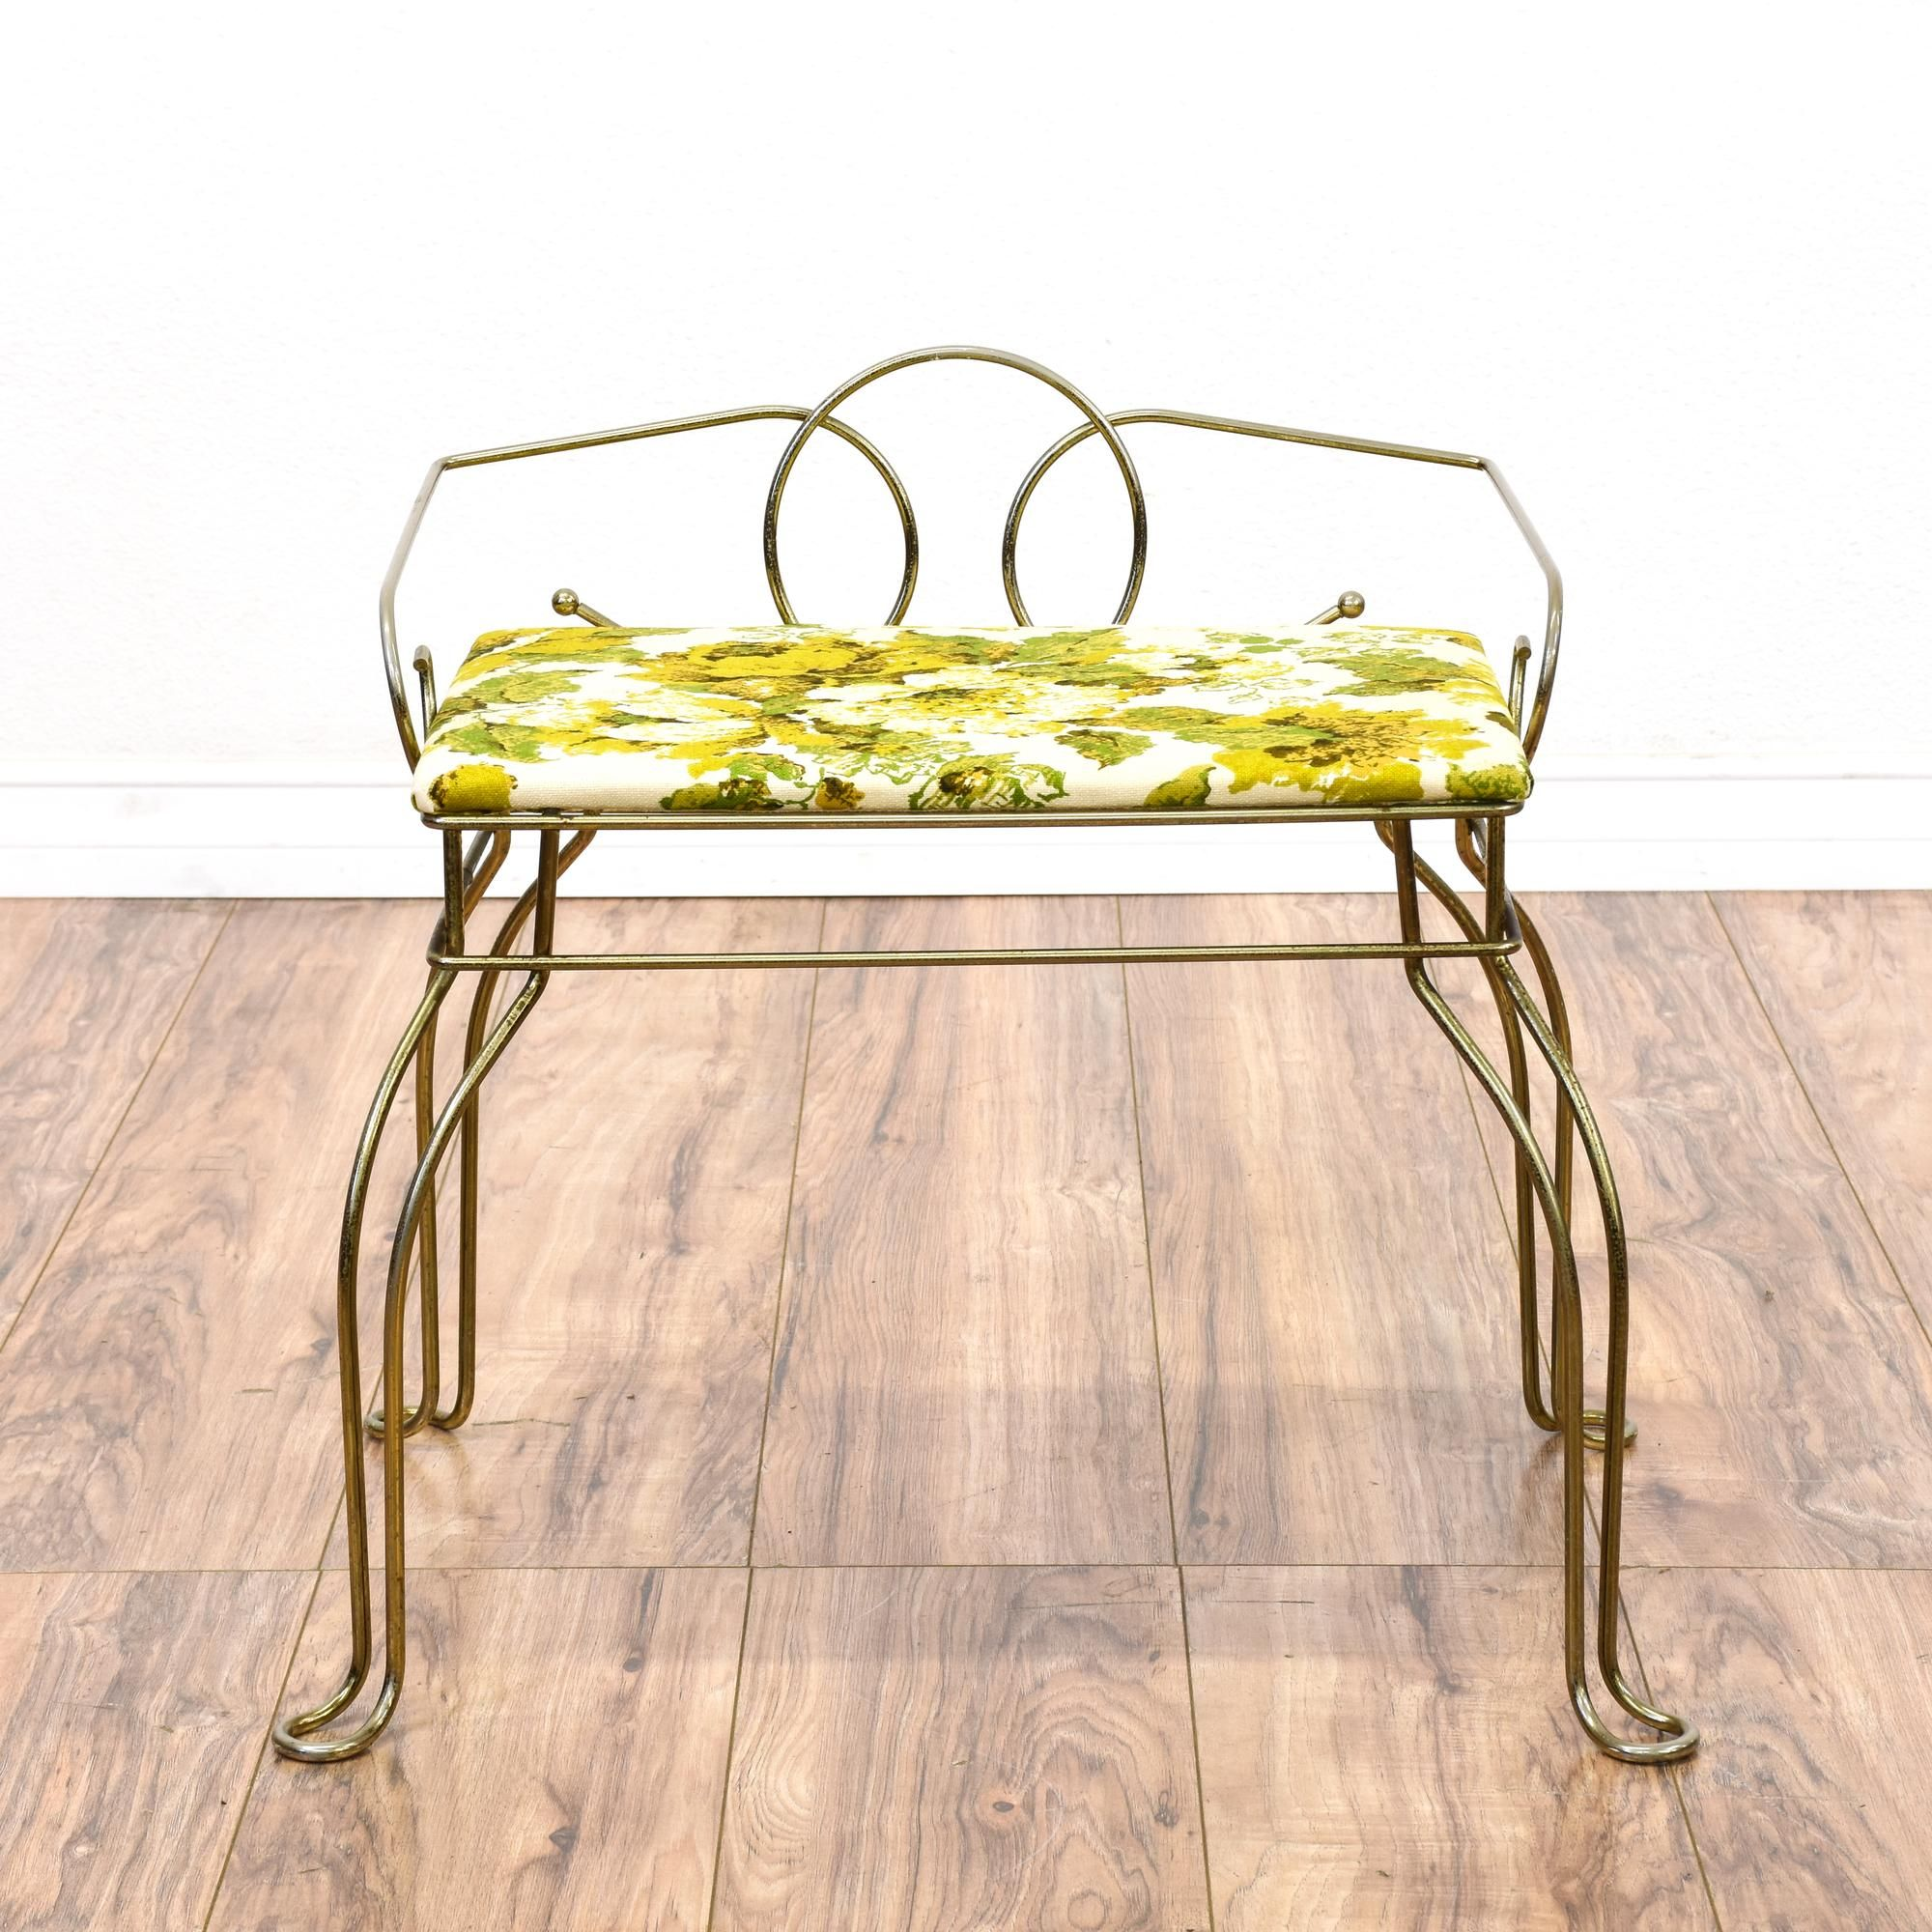 This Mid Century Modern Vanity Stool Is Featured In A Durable Bent Metal With A Shiny Brass Finish Th Vanity Stool Mid Century Modern Vanity Vintage Furniture